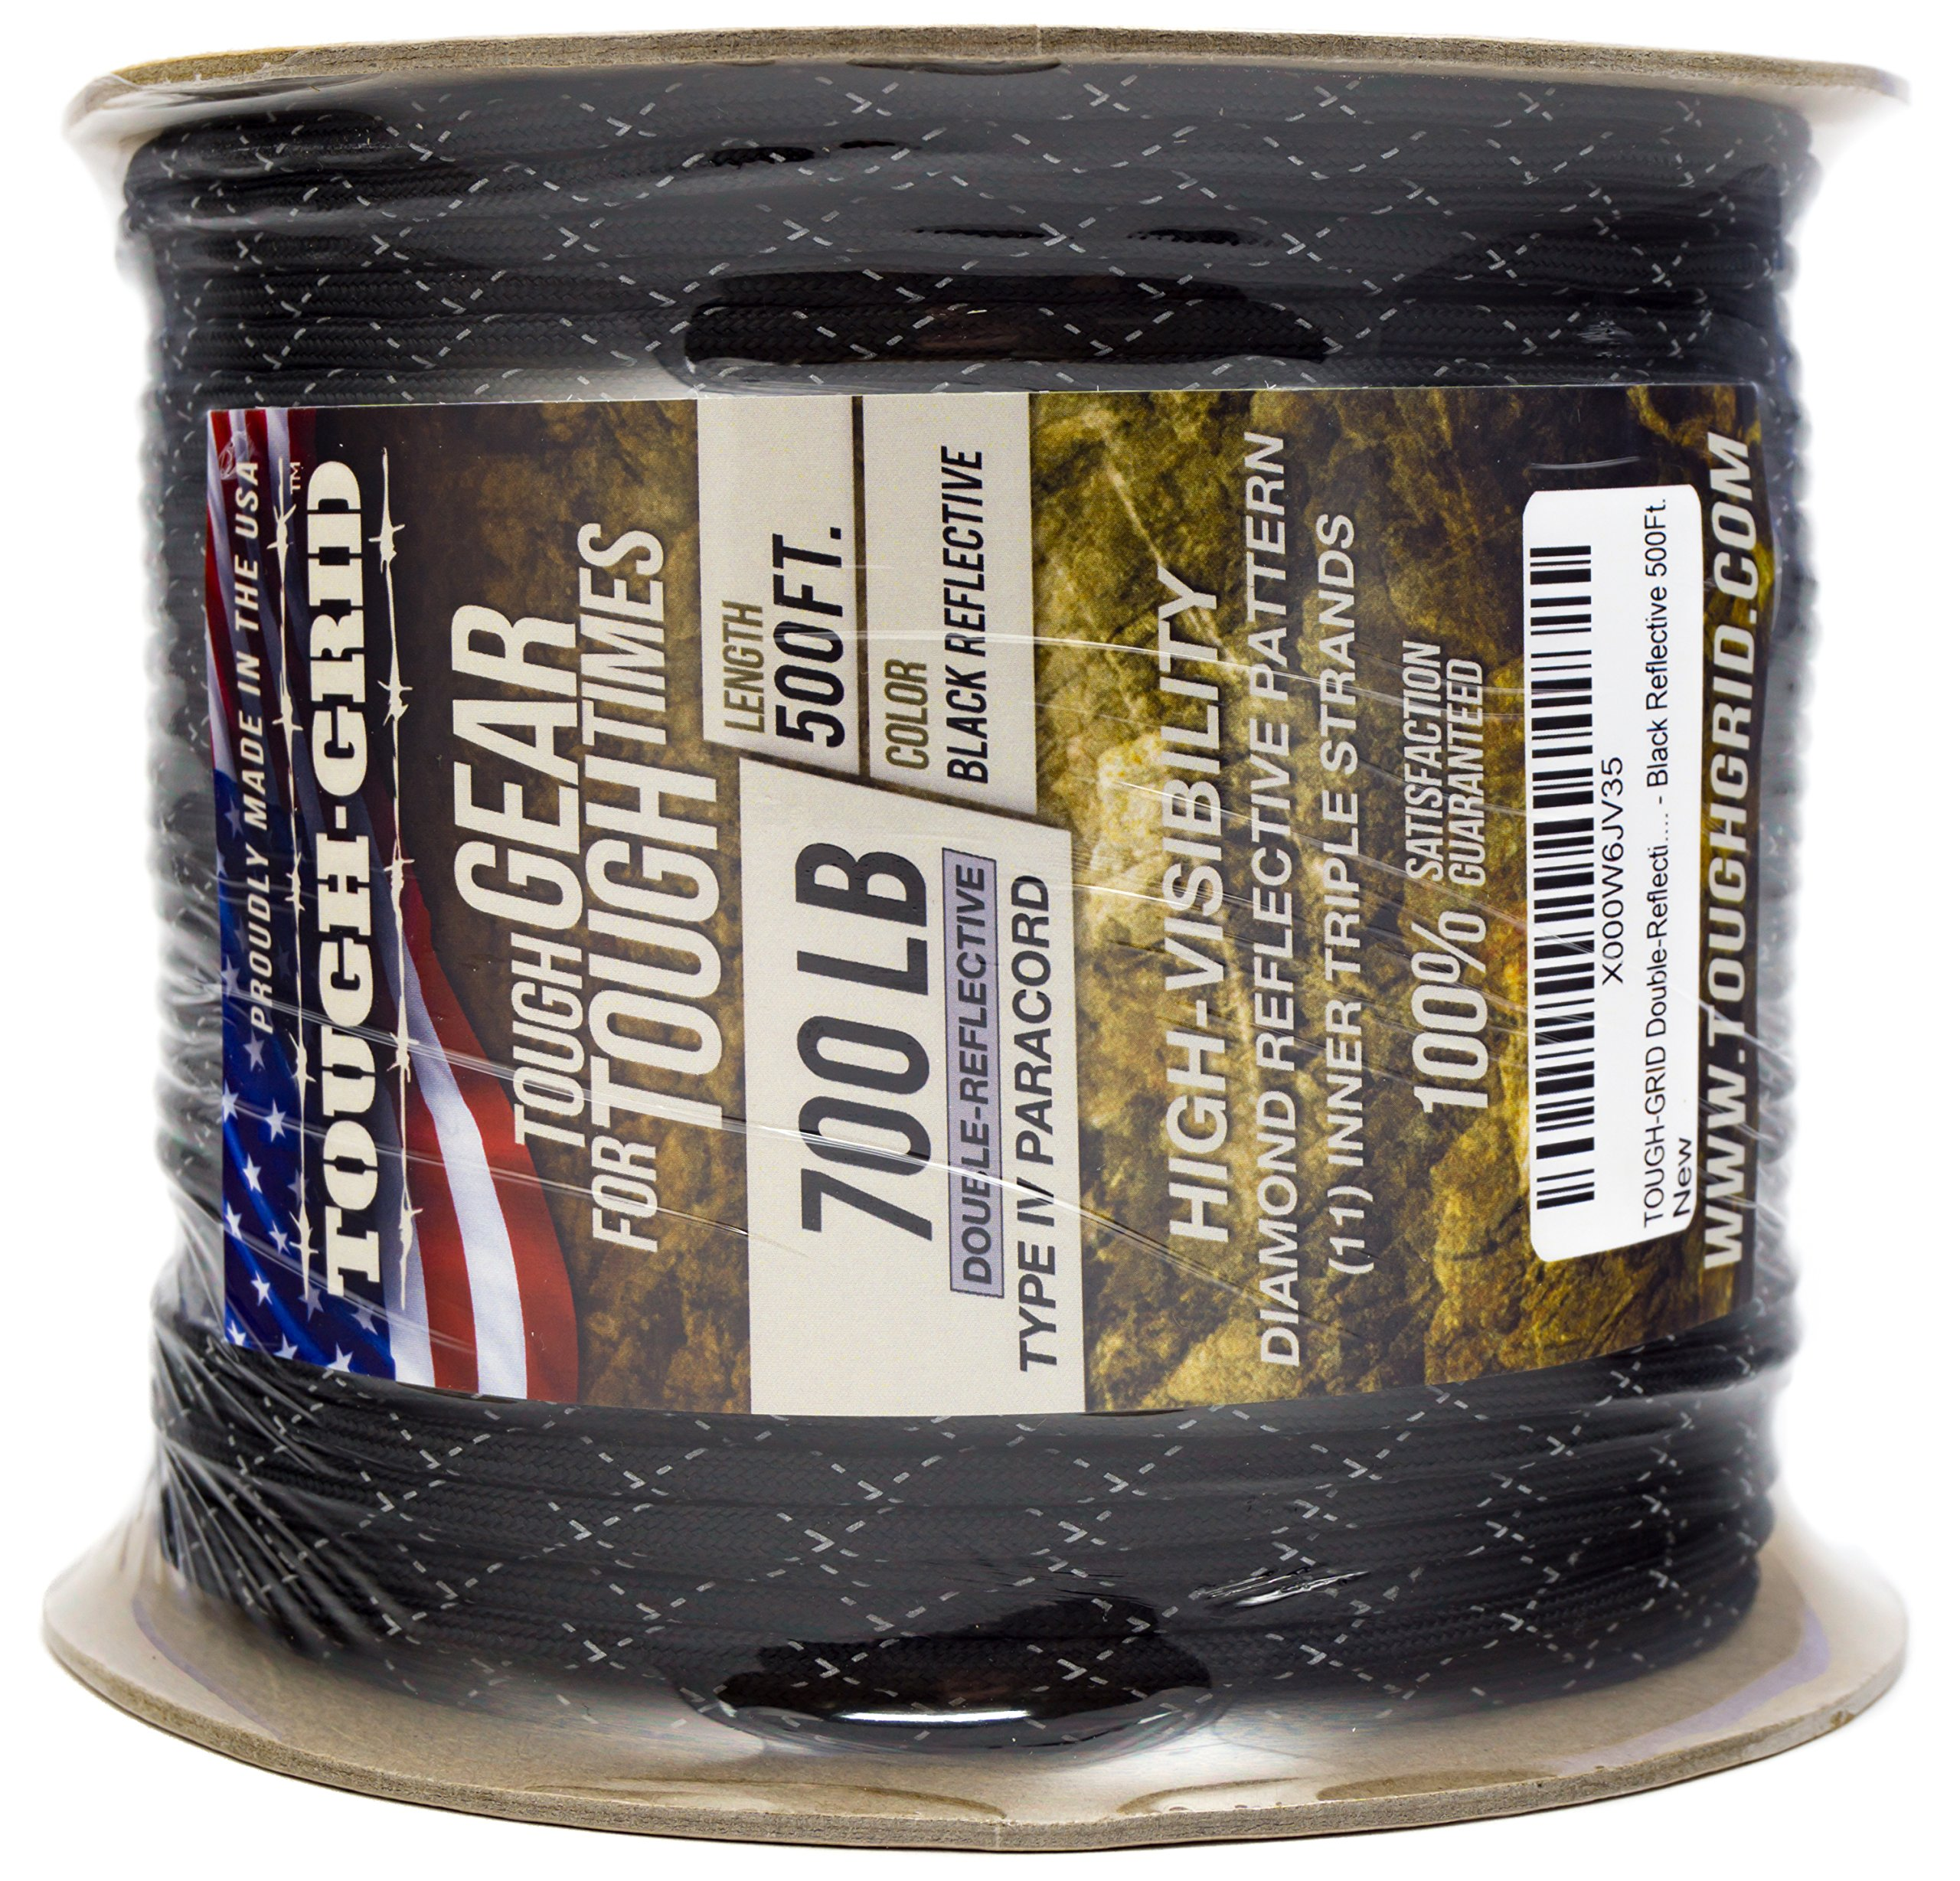 TOUGH-GRID New 700lb Double-Reflective Paracord/Parachute Cord - 2 Vibrant Retro-Reflective Strands for The Ultimate High-Visibility Cord - 100% Nylon - Made in USA. - 500Ft. Black Reflective by TOUGH-GRID (Image #6)